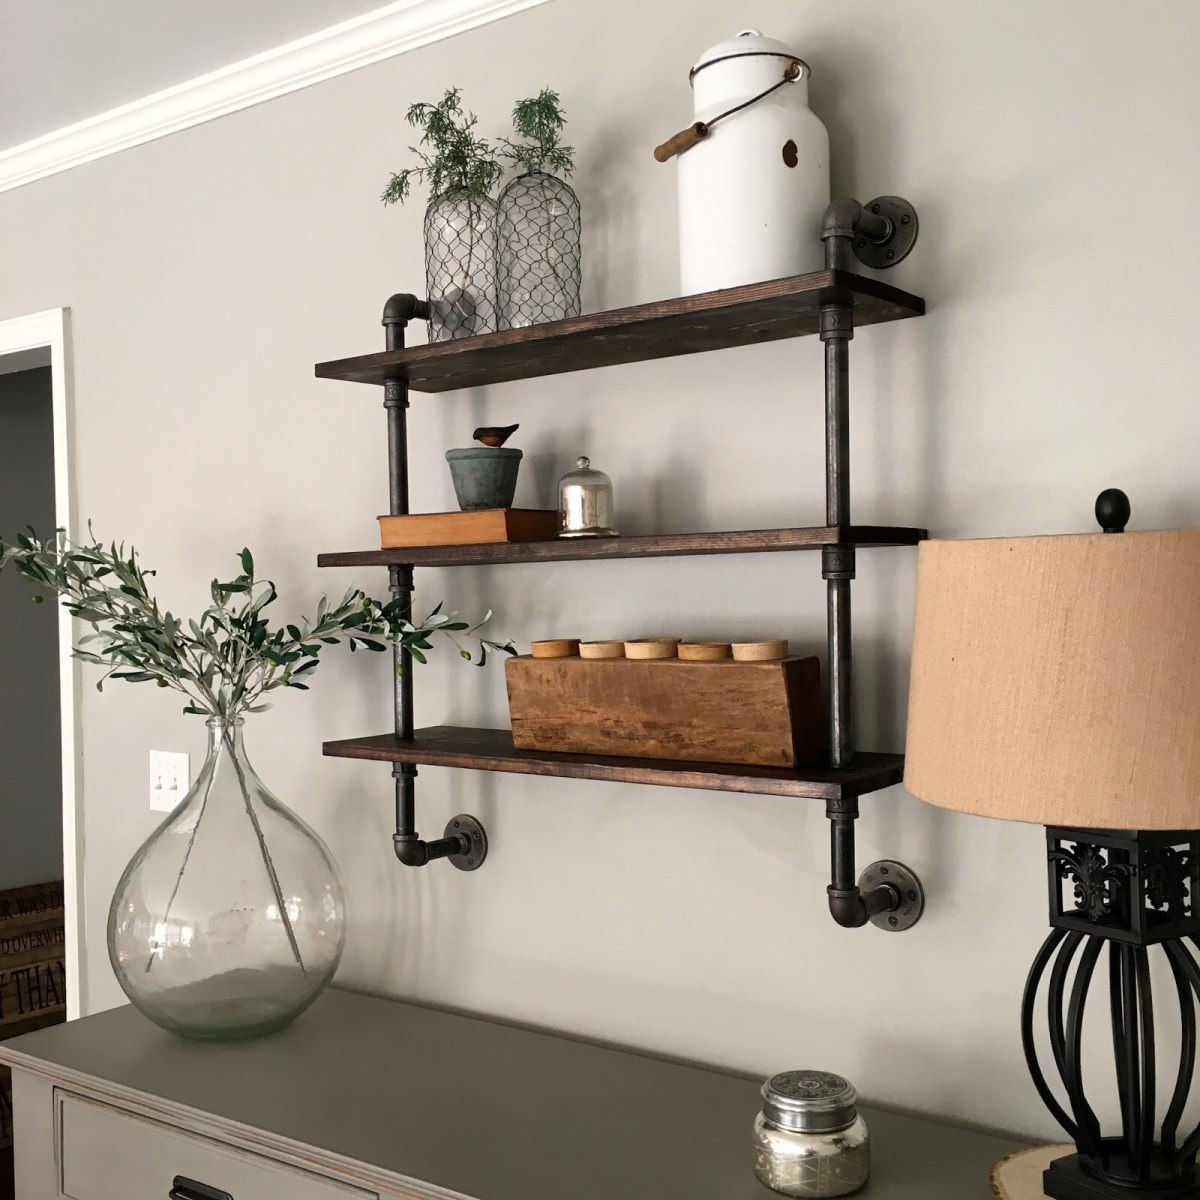 DIY: Pipe Shelving